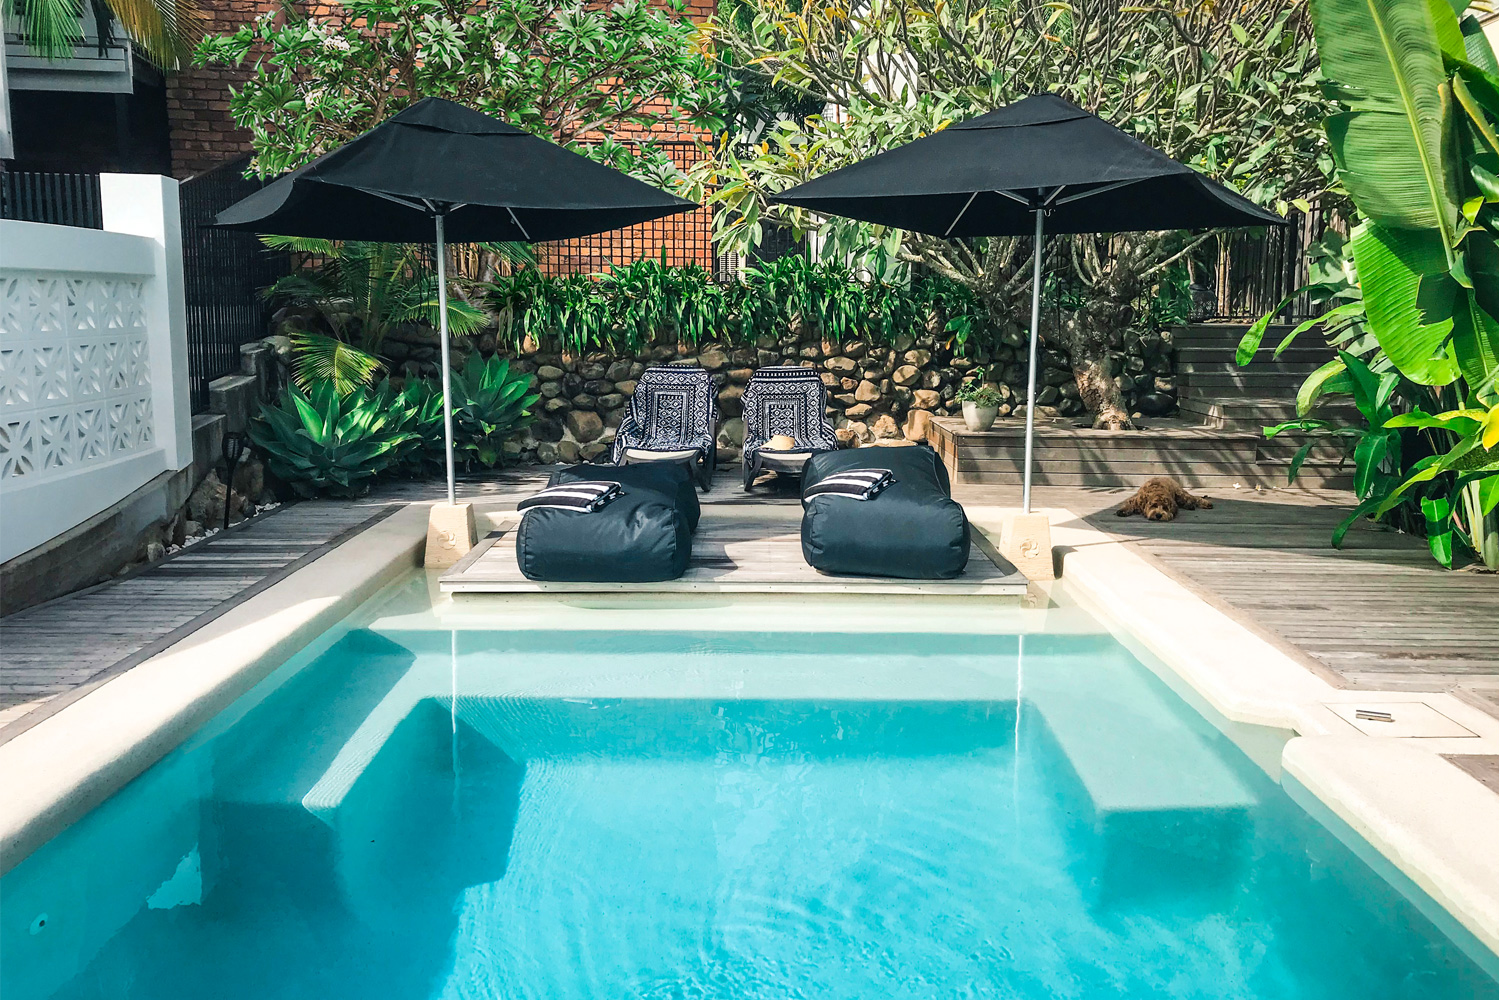 This steep sloping block pool proves a tropical oasis can be created anywhere